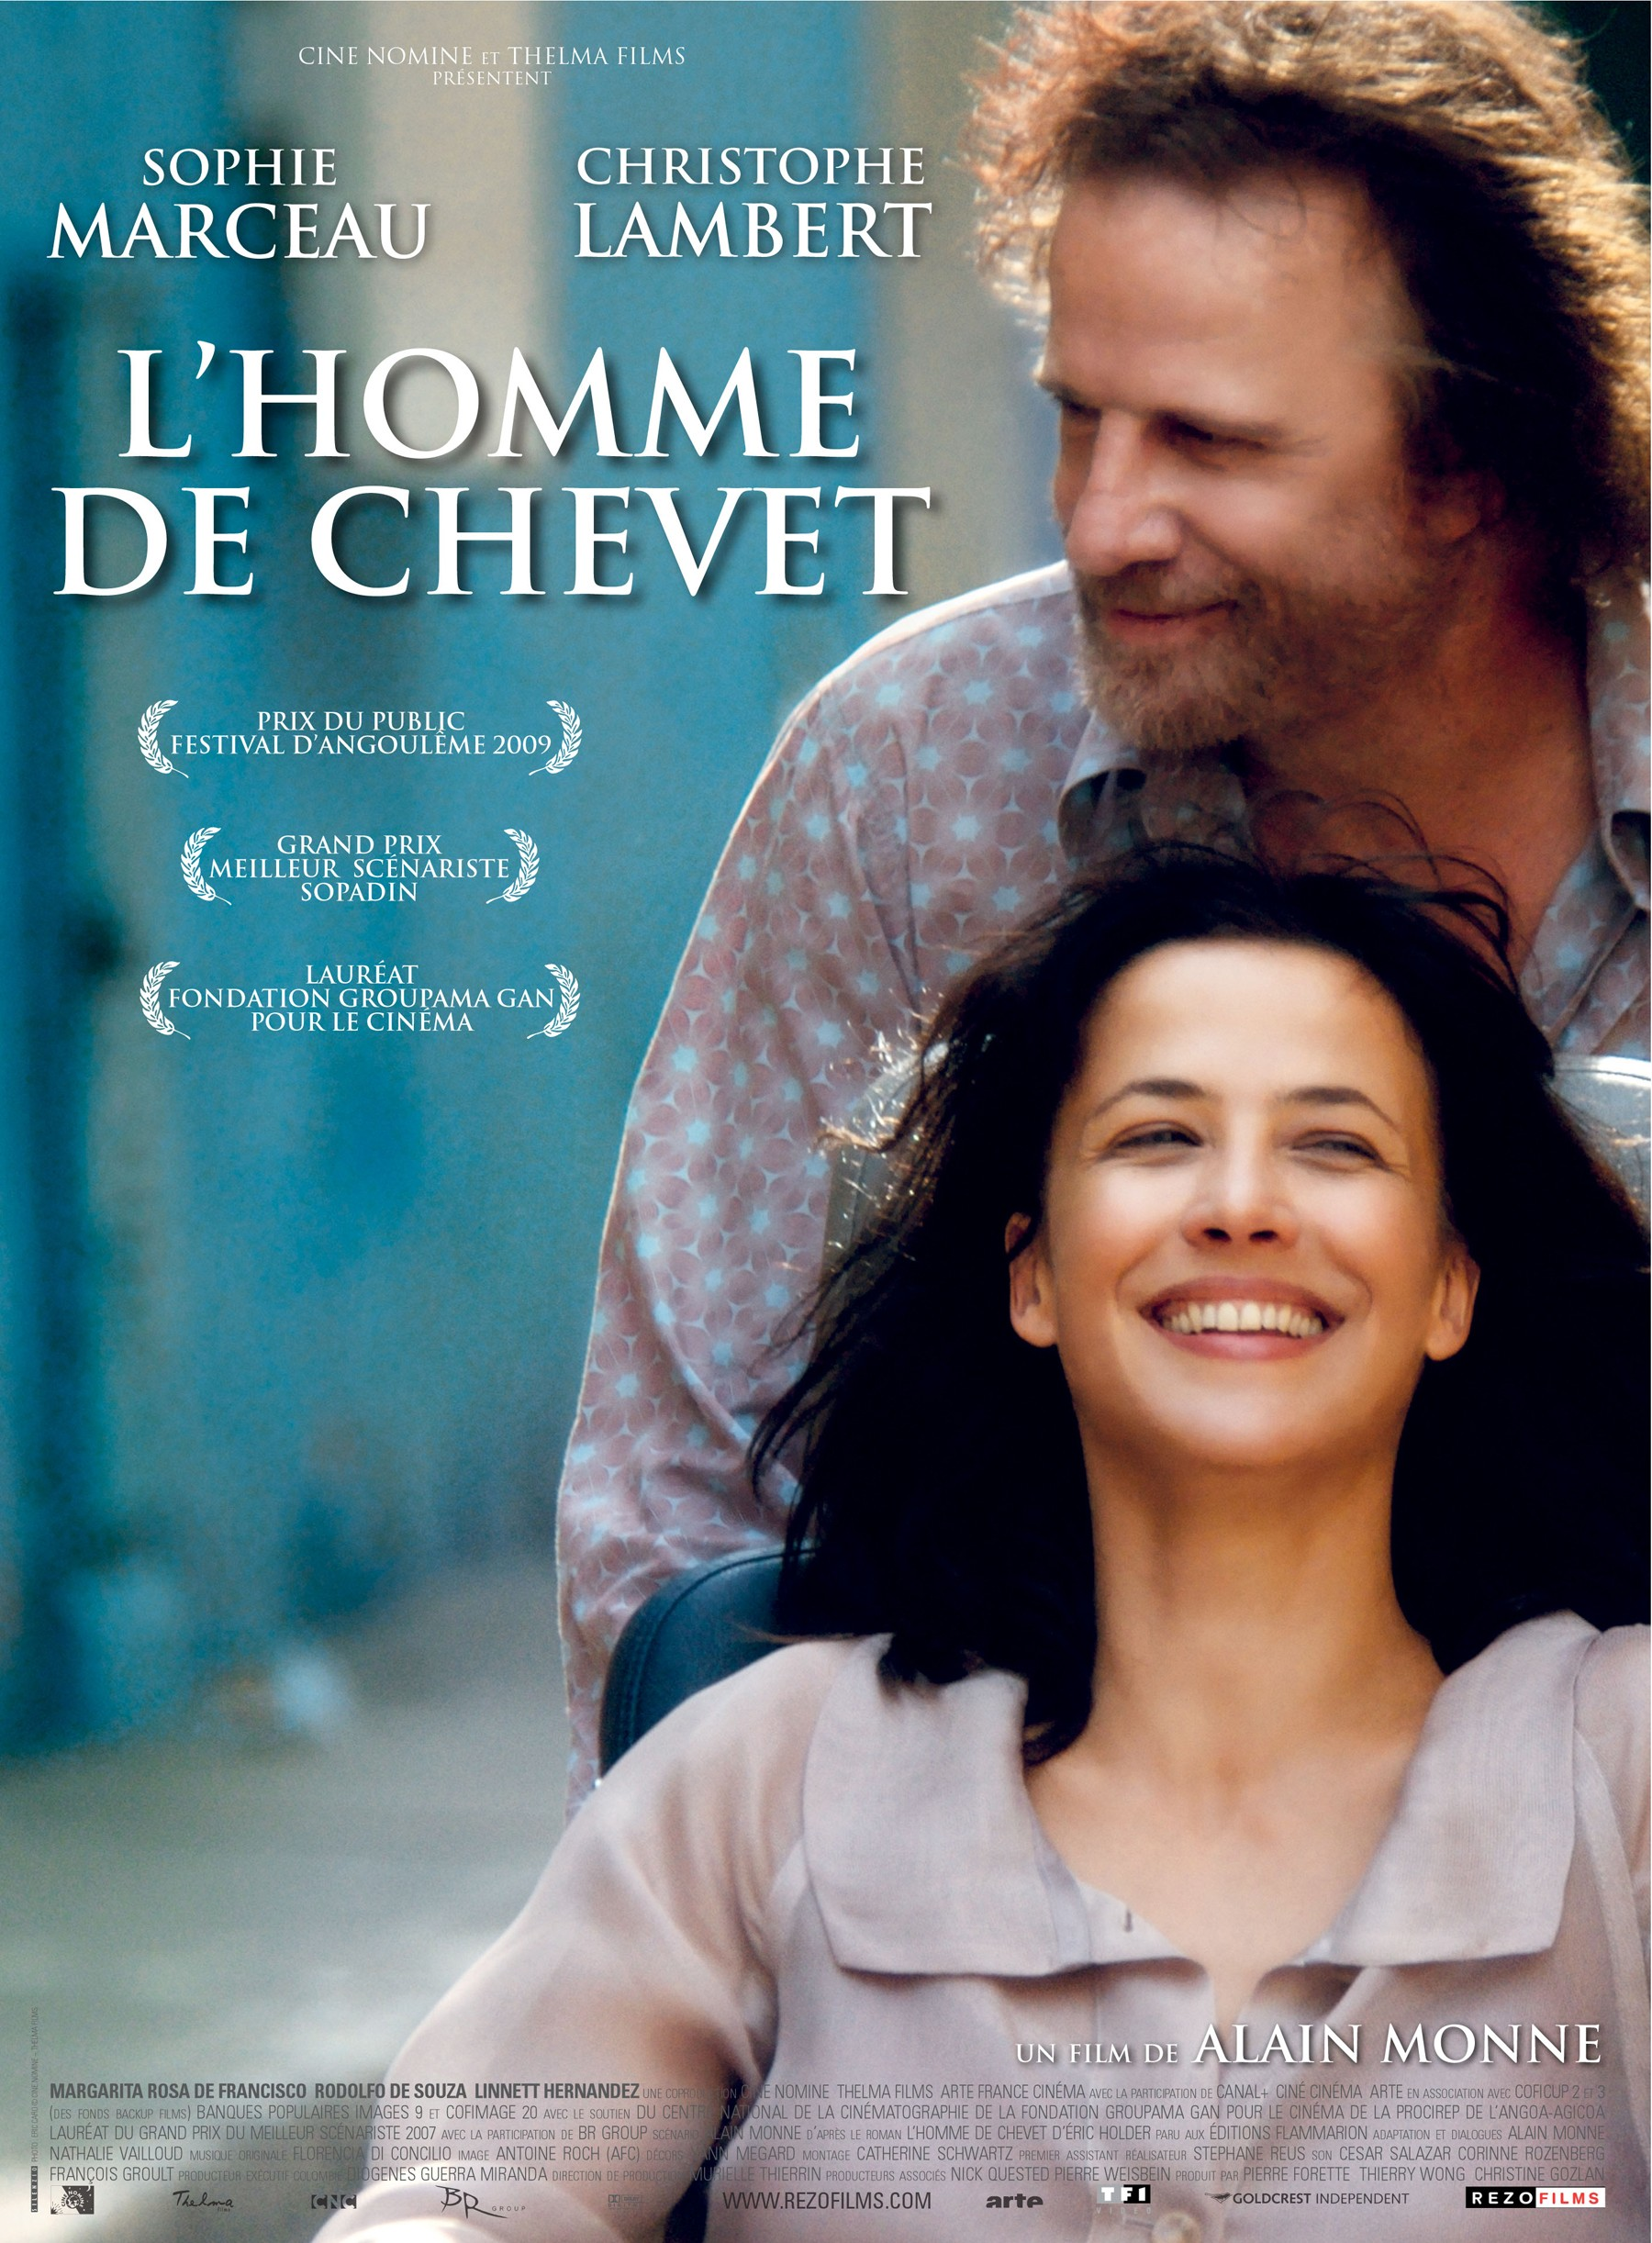 L'Homme de chevet [BDRIP-AC3] [FRENCH] [MULTI]